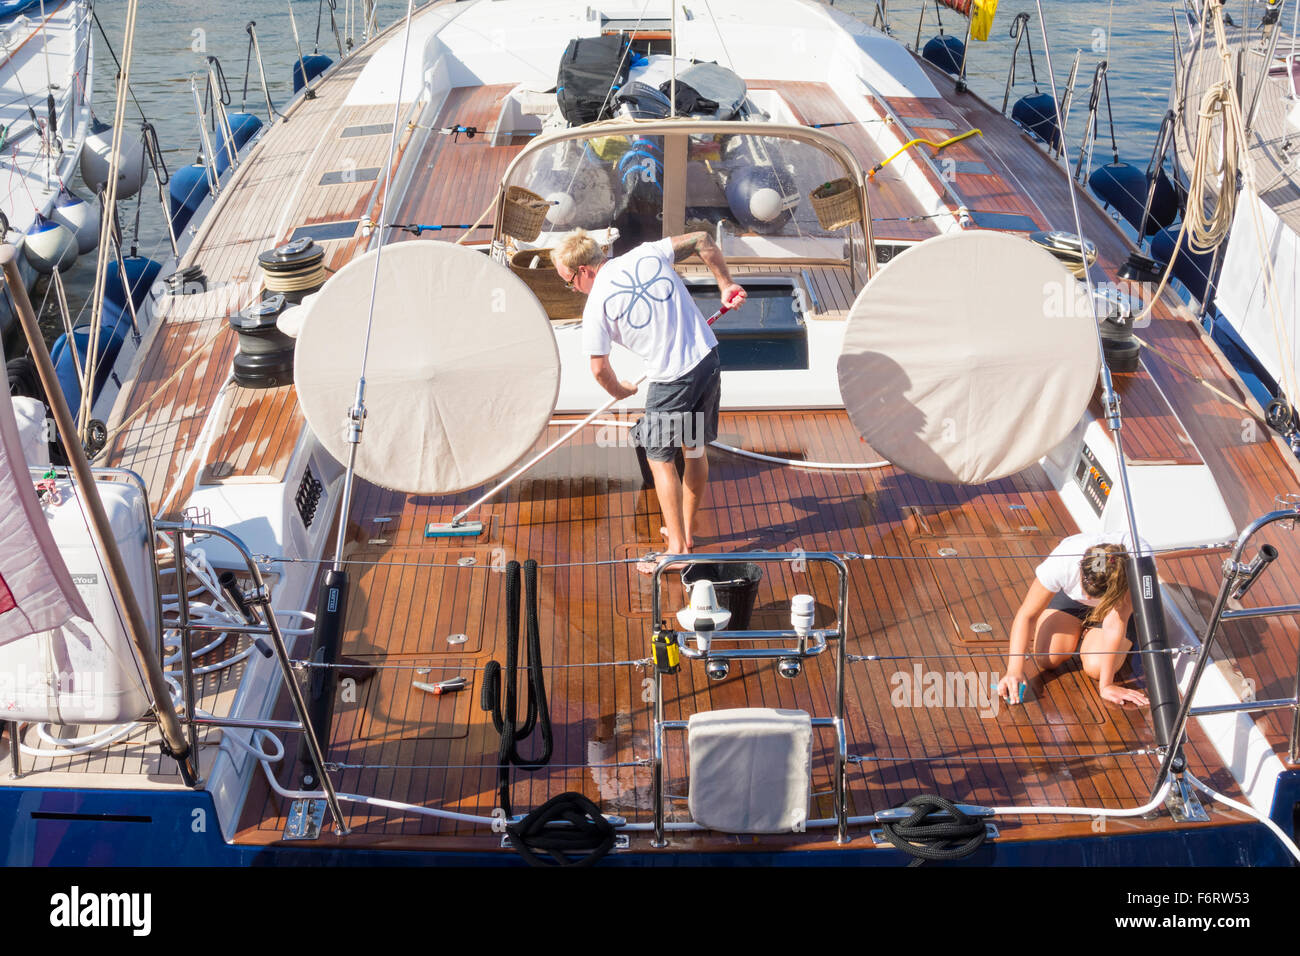 Young male and female crew members scrubbing deck of luxury yacht - Stock Image